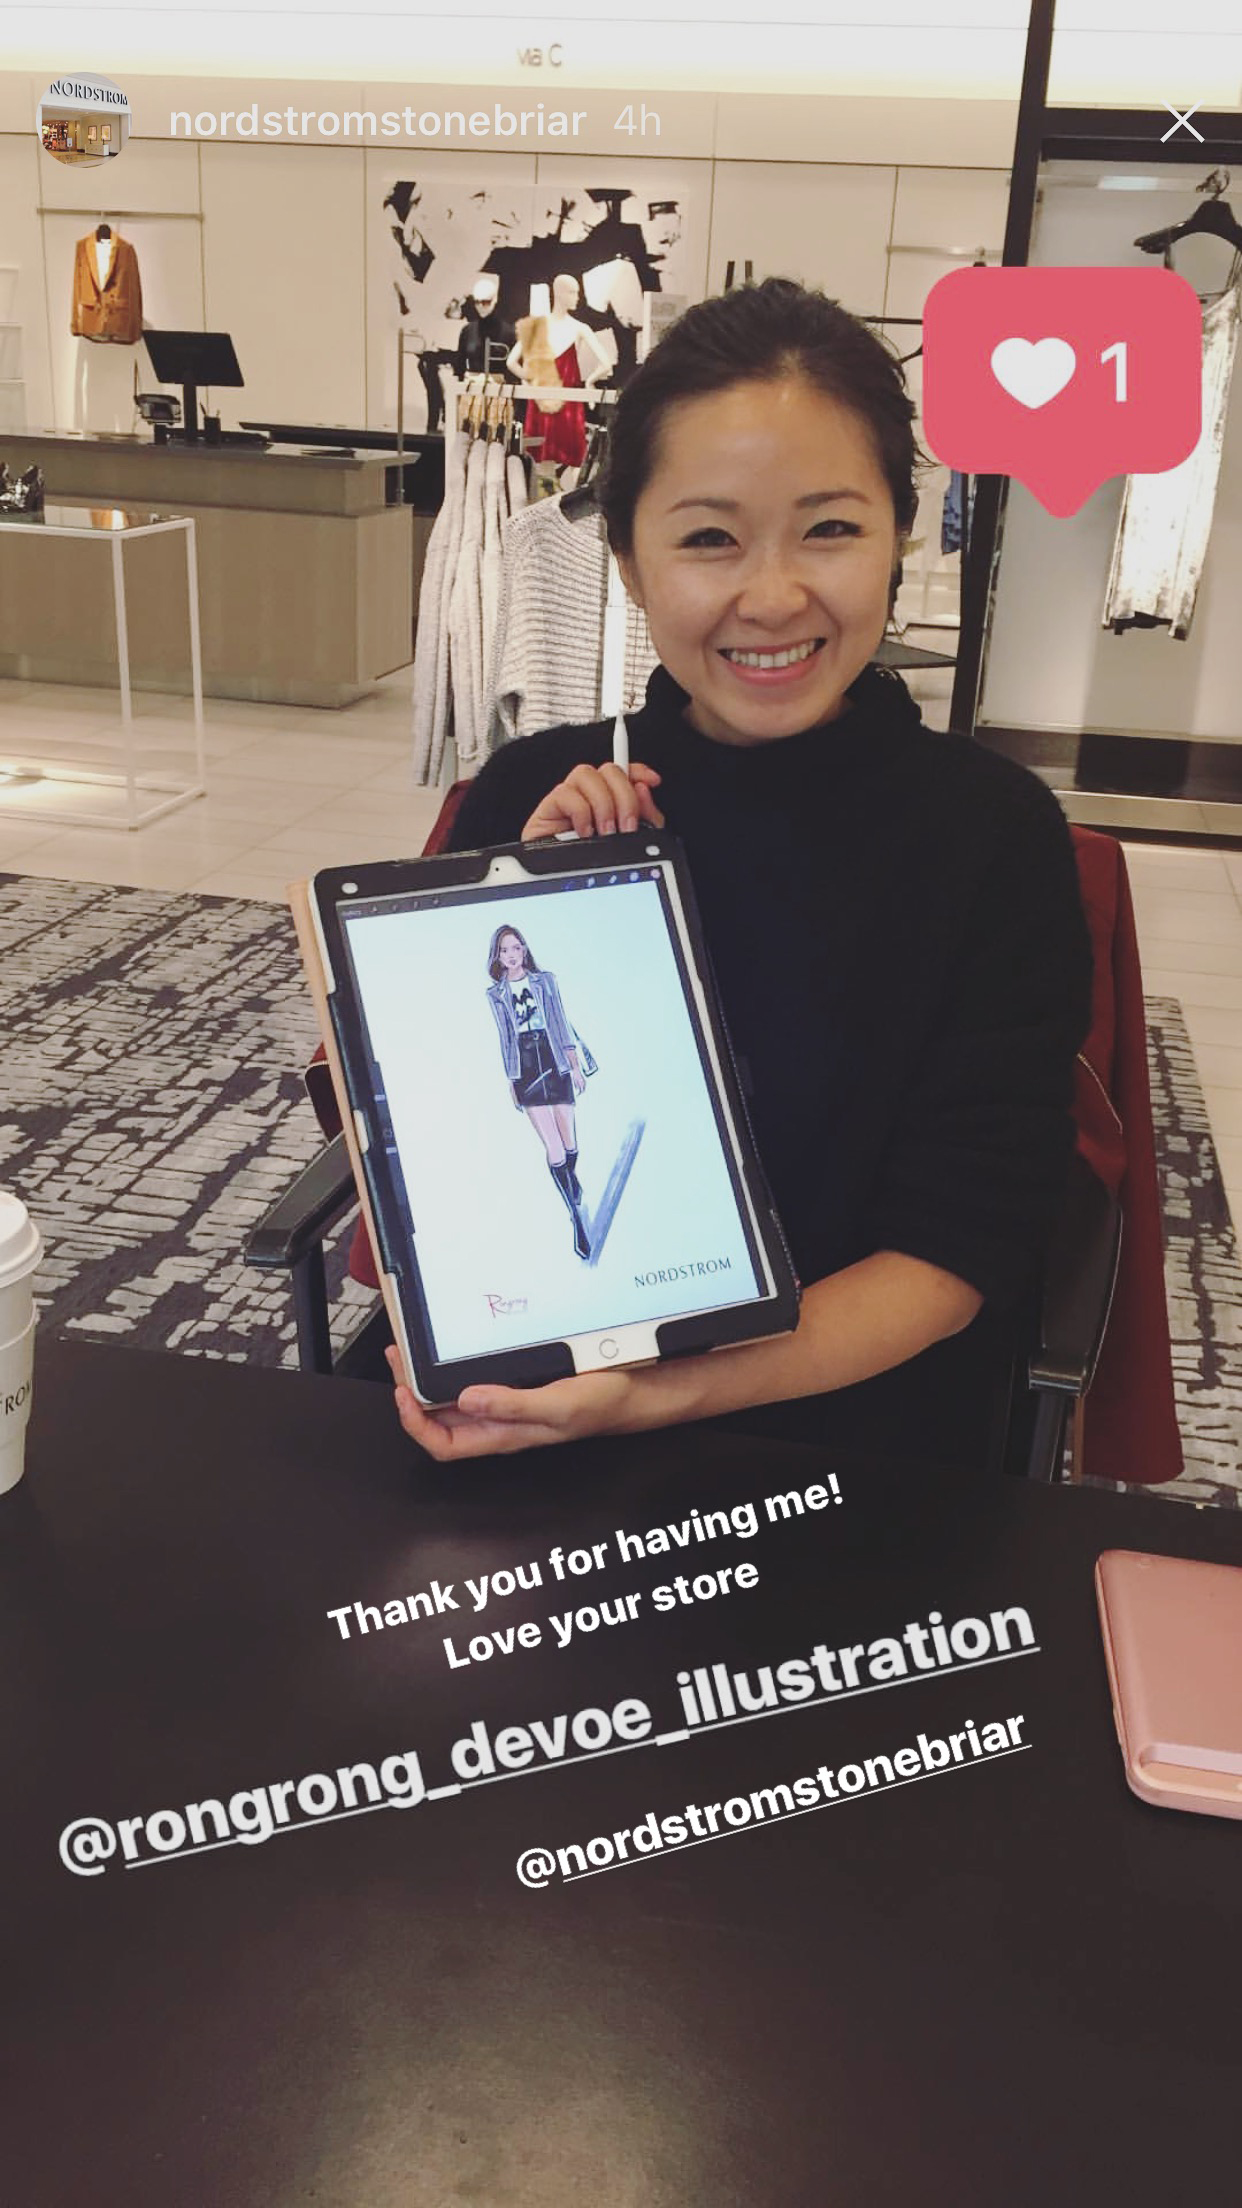 Live fashion sketching at Nordstrom dallas event by Rongrong DeVoe on Instagram.jpg